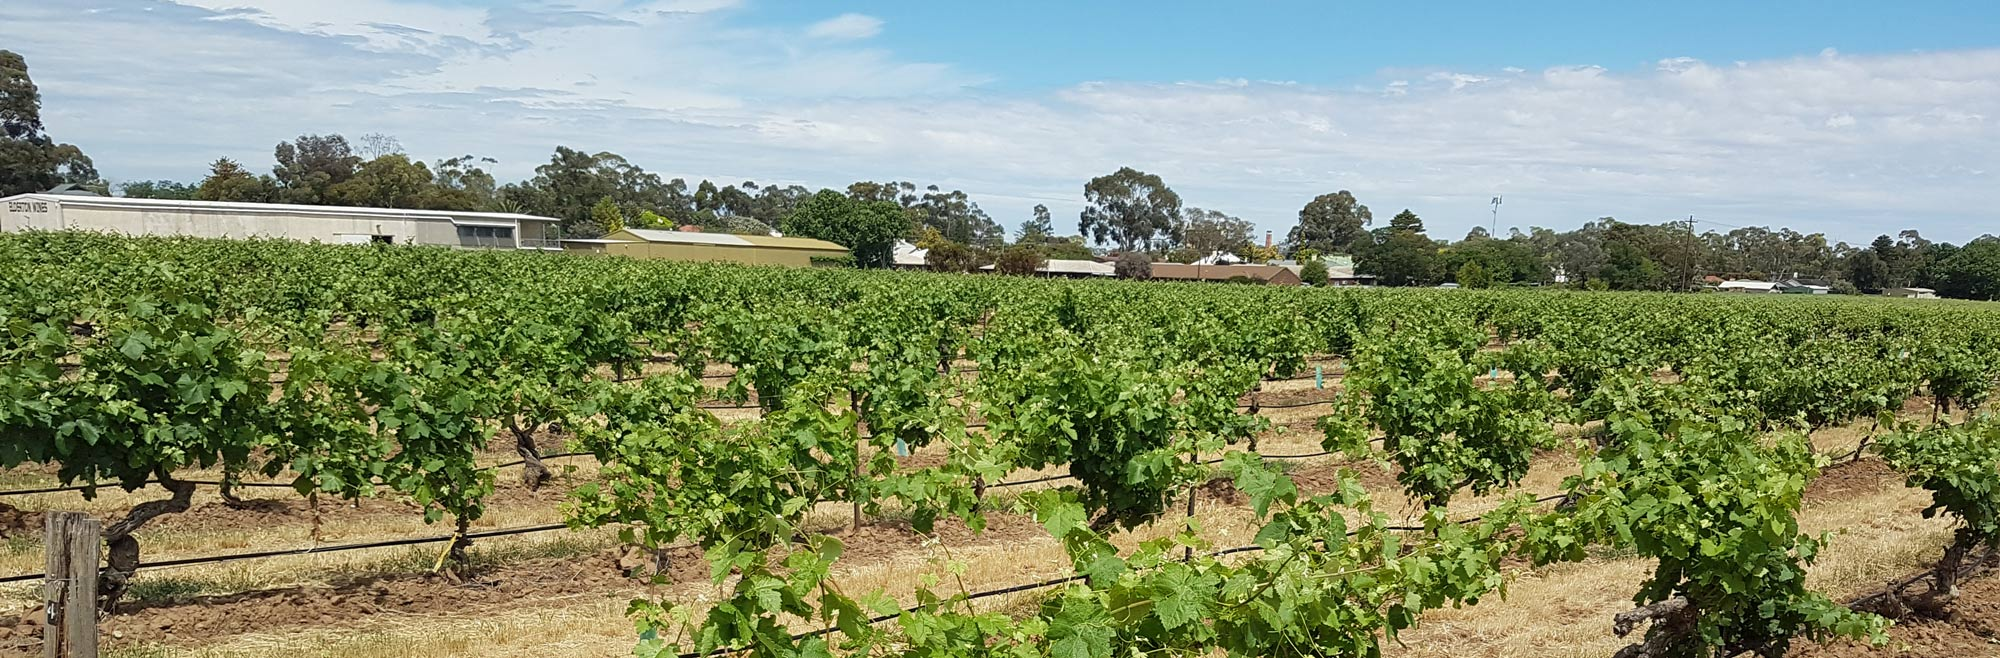 Visiting Barossa Valley Wineries: Where to Taste, Stay and Eat